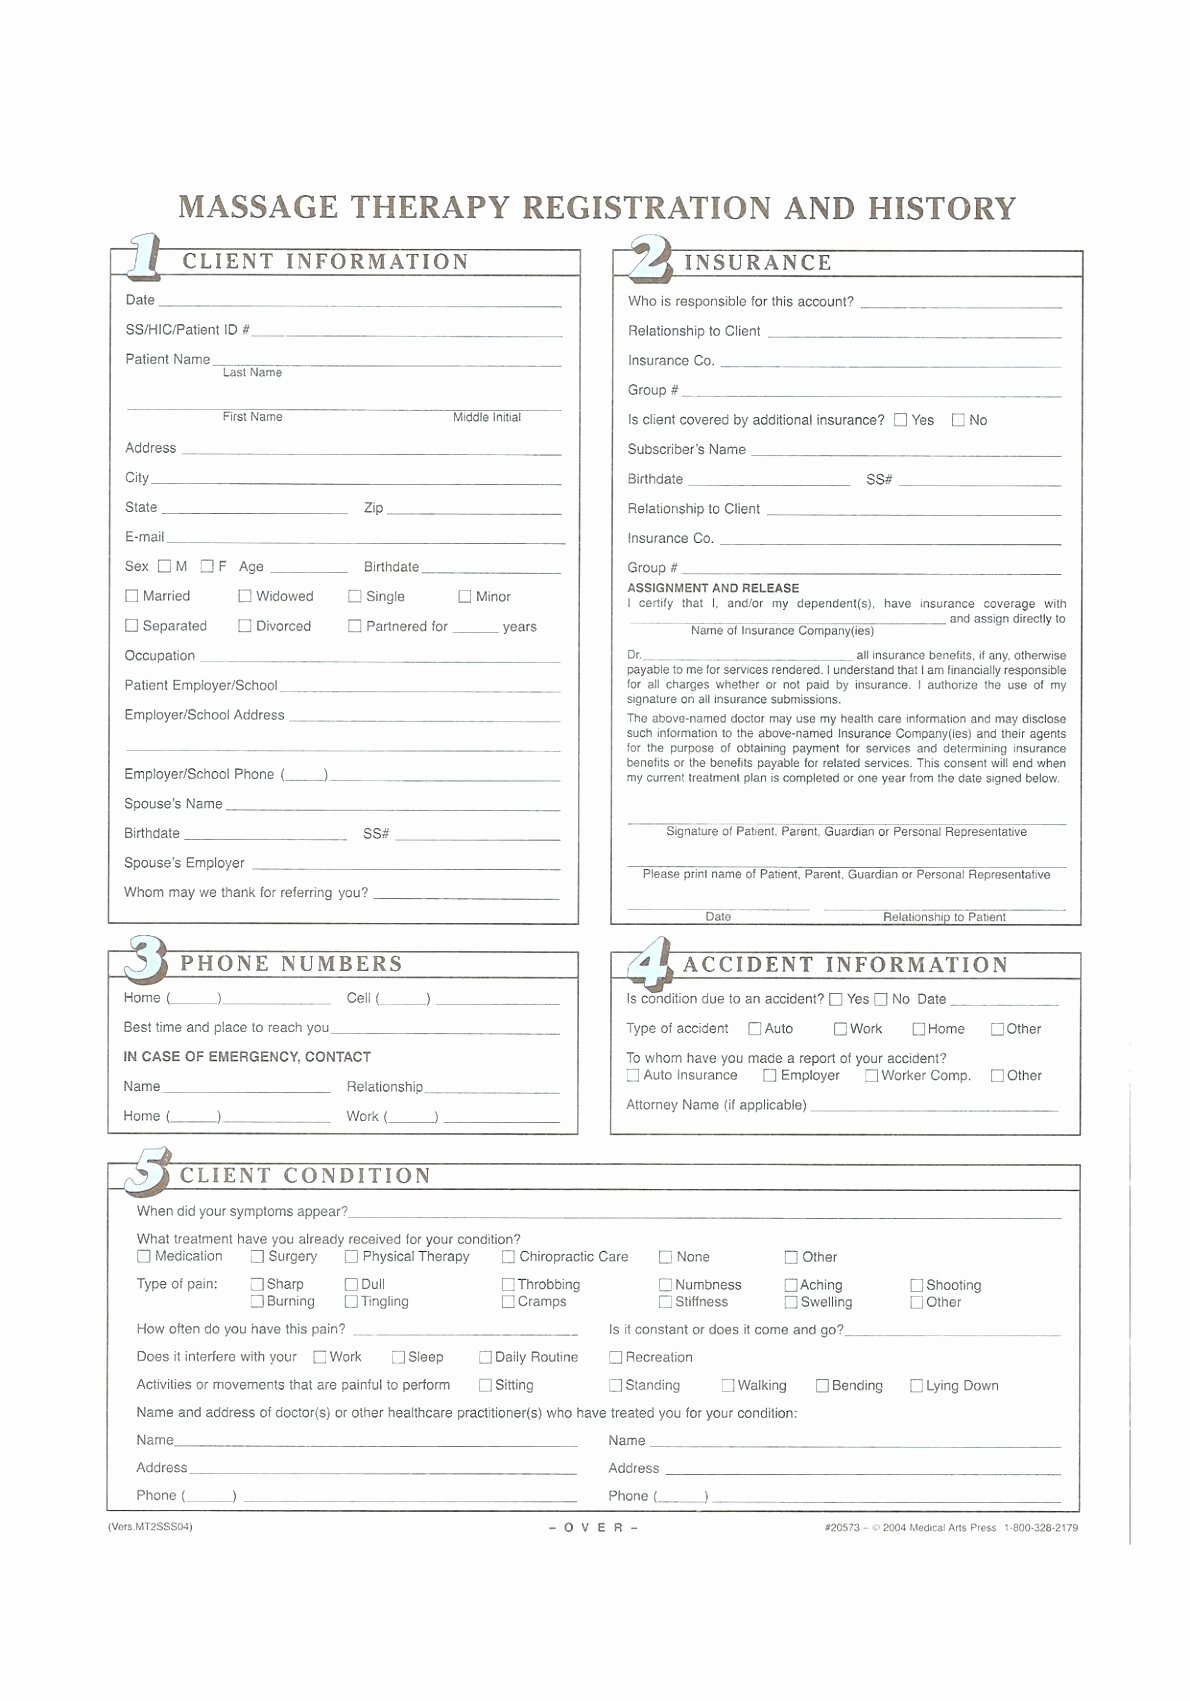 Client Intake form Template Inspirational Massage Intake form Template Free Image Collections